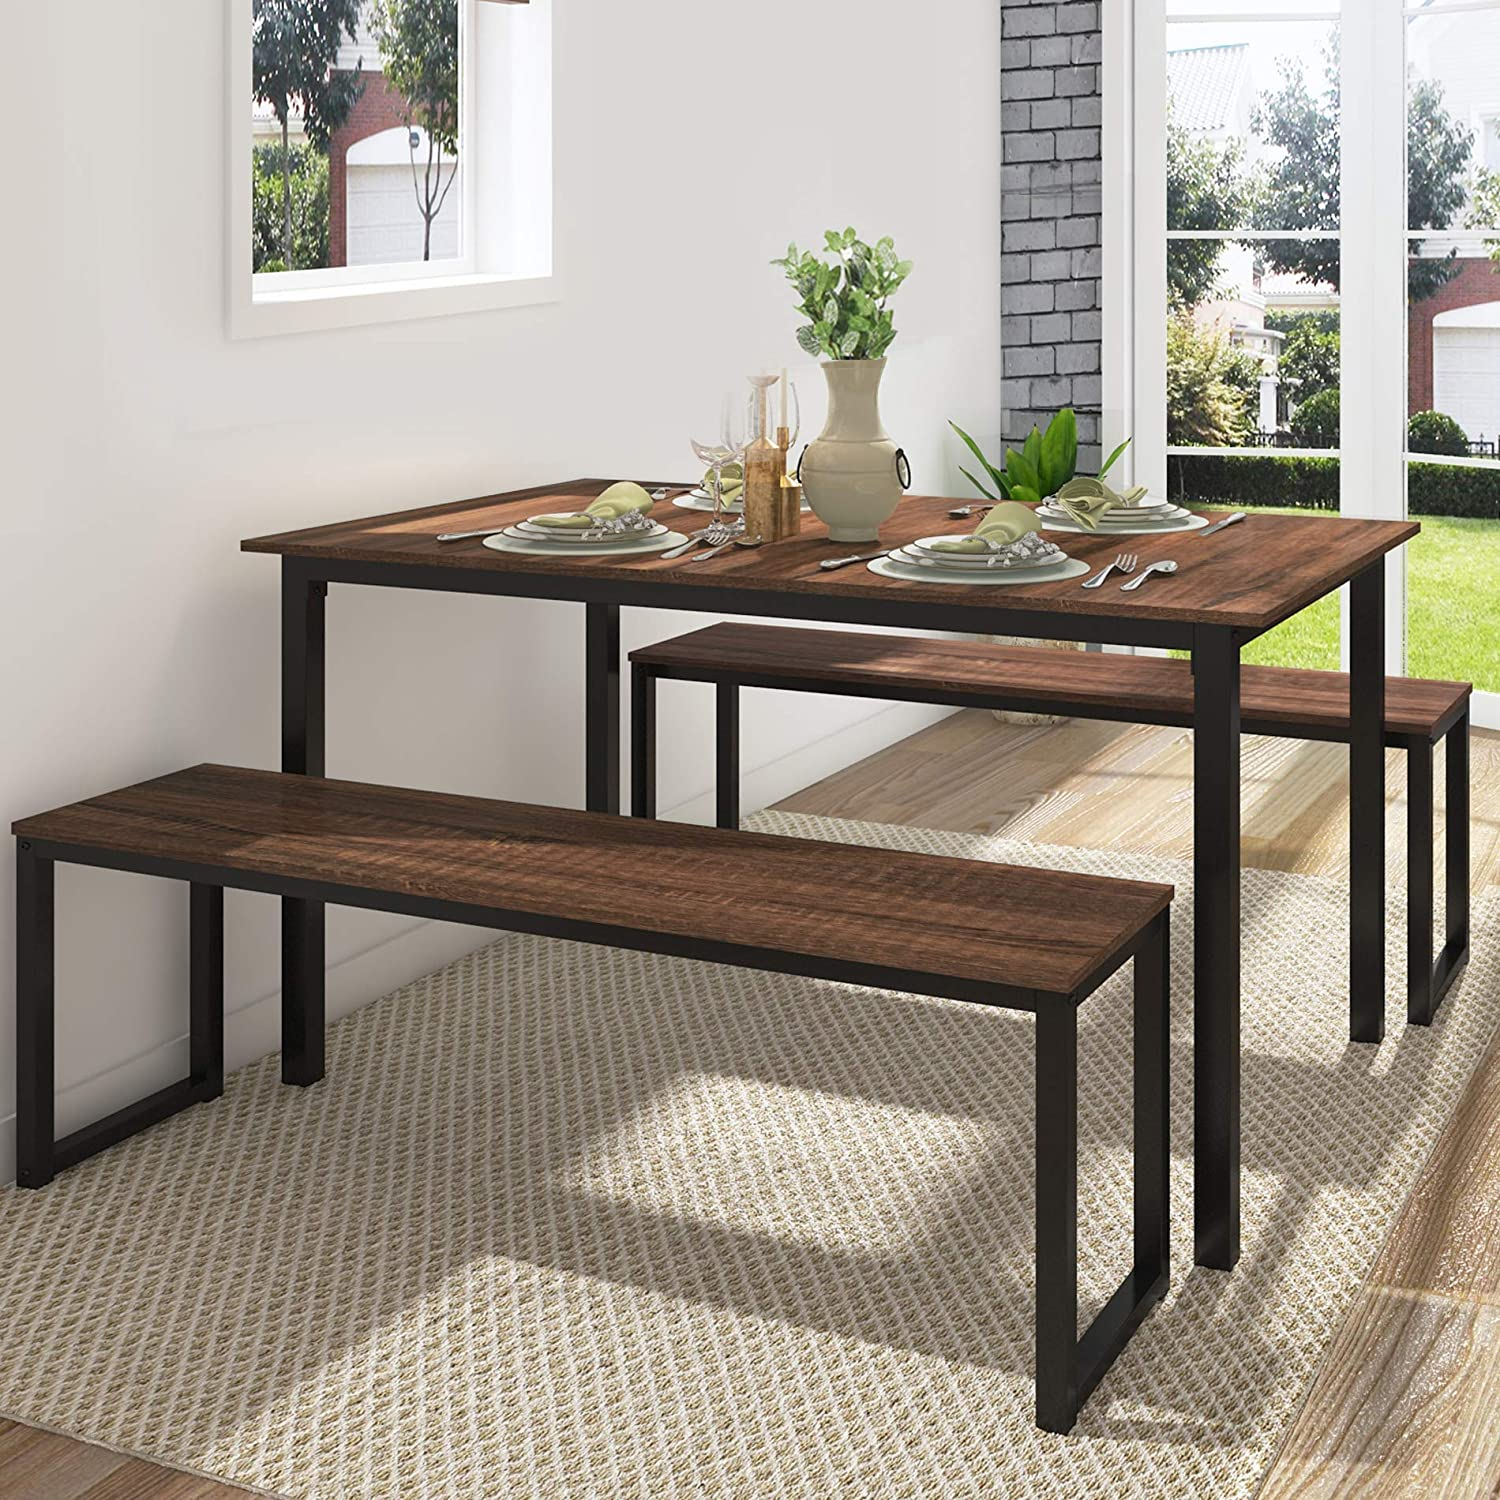 Fitueyes 3 Piece Dining Table Set With 2 Benches Industrial Brown Walmart Com Walmart Com